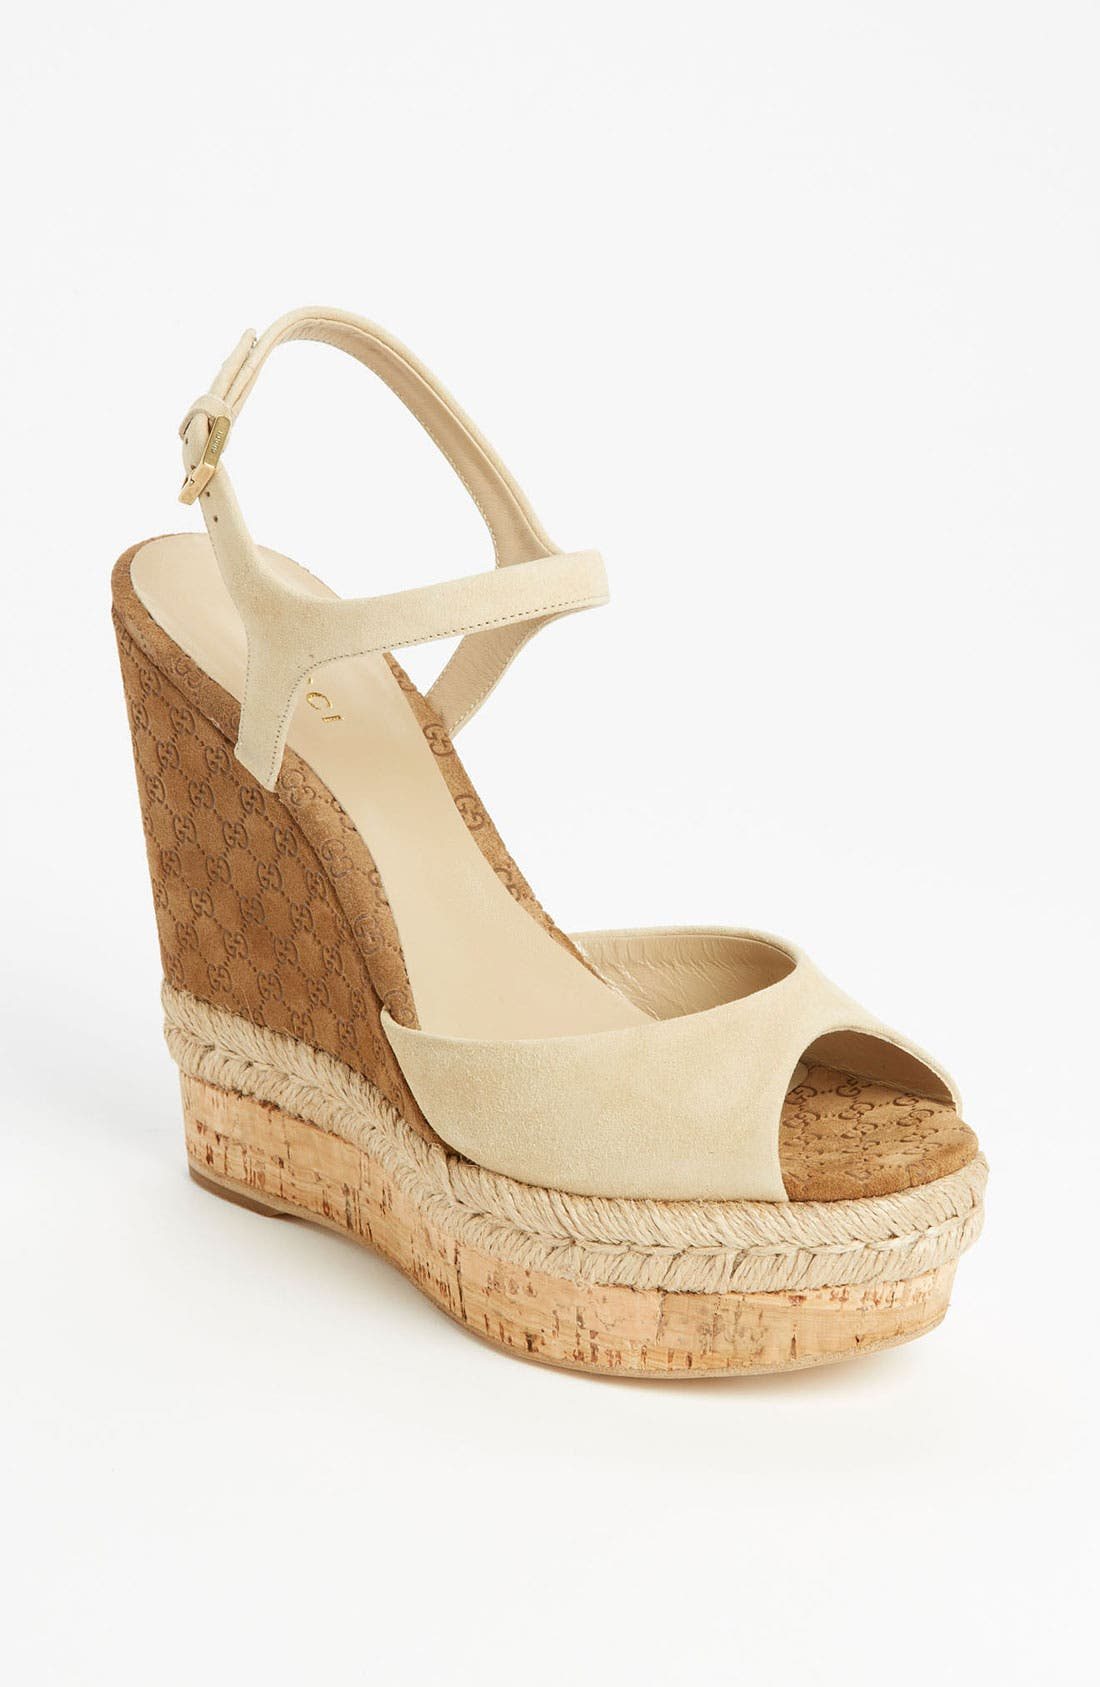 Main Image - Gucci 'Hollie' Wedge Sandal